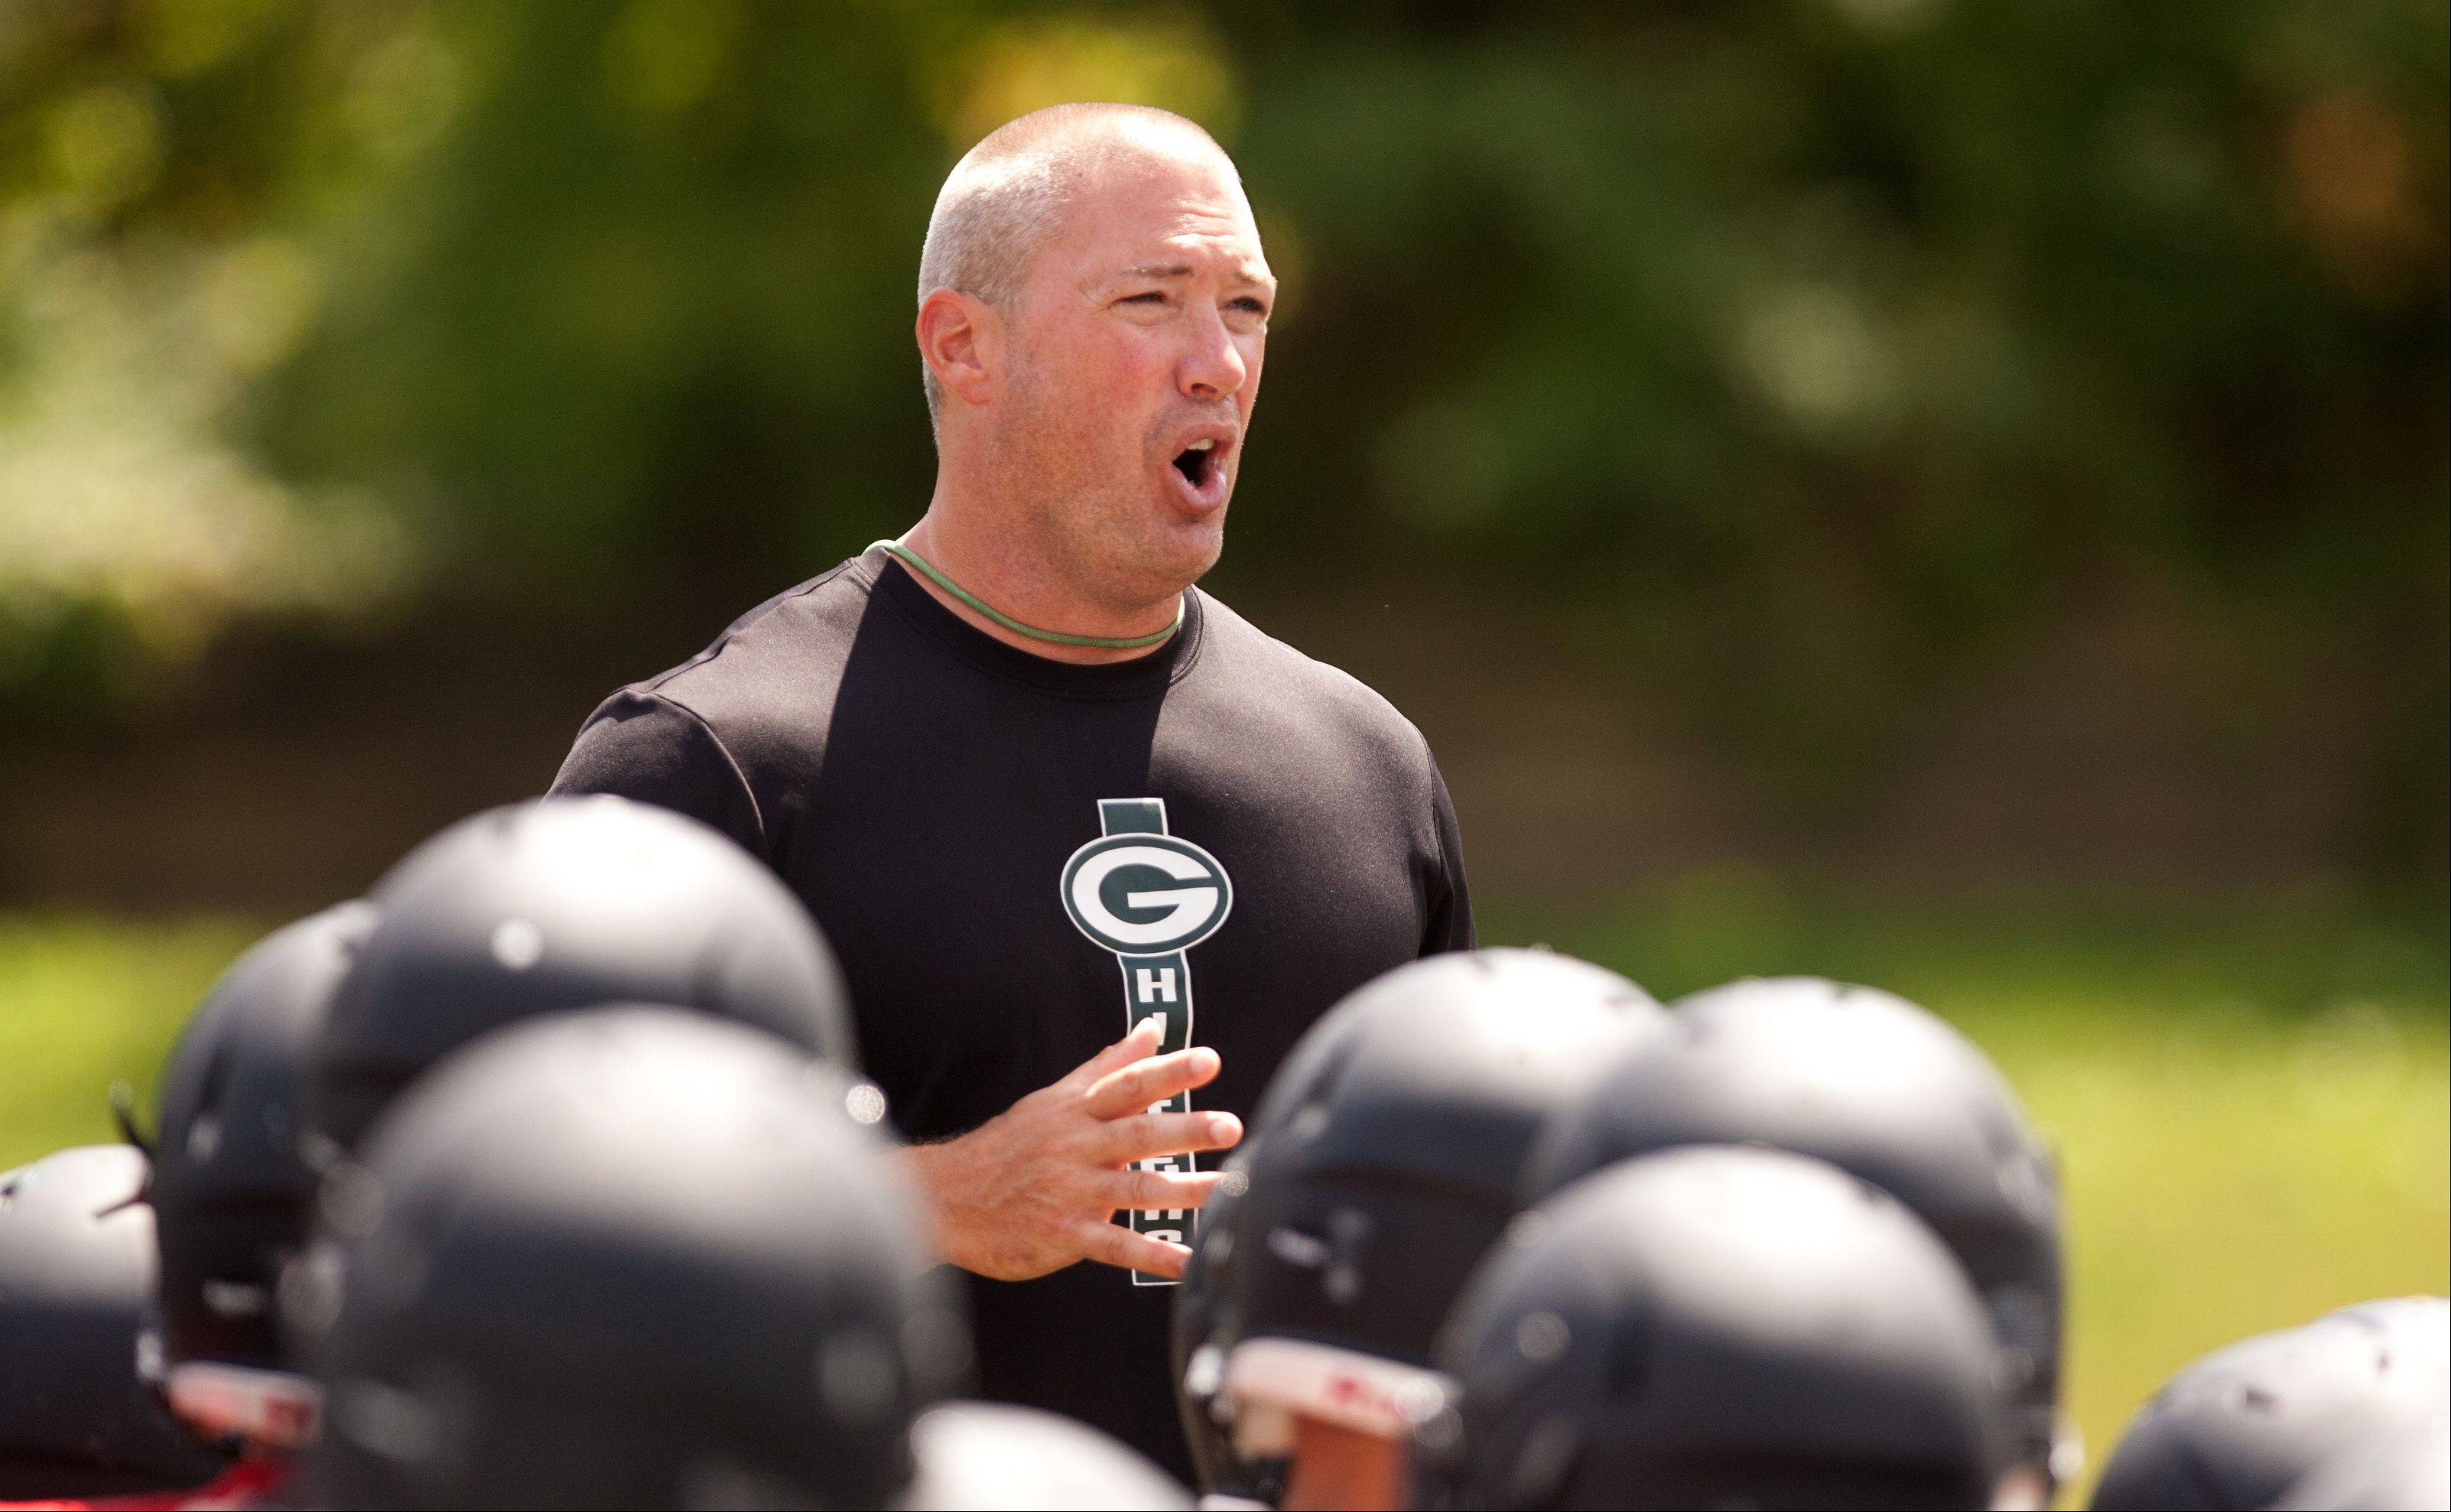 Glenbard West head football coach Chad Hetlet leads the first day of practice.